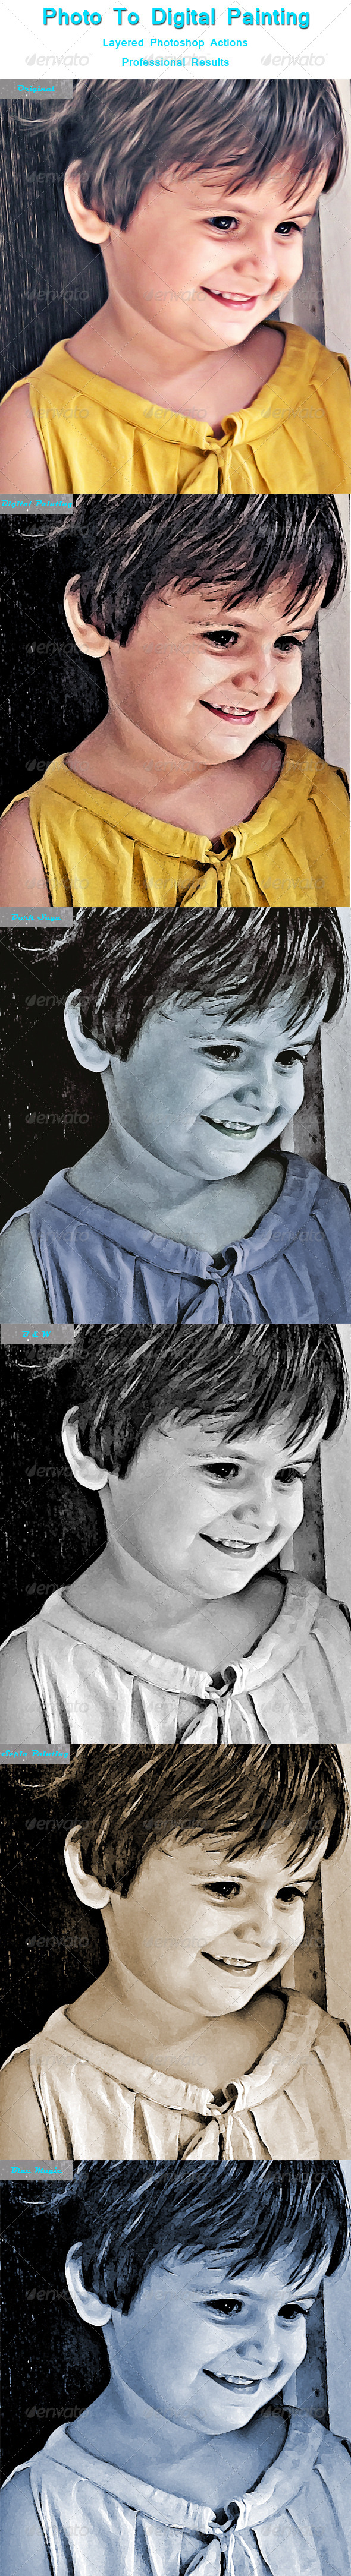 GraphicRiver Digital Painting Actions 5192644